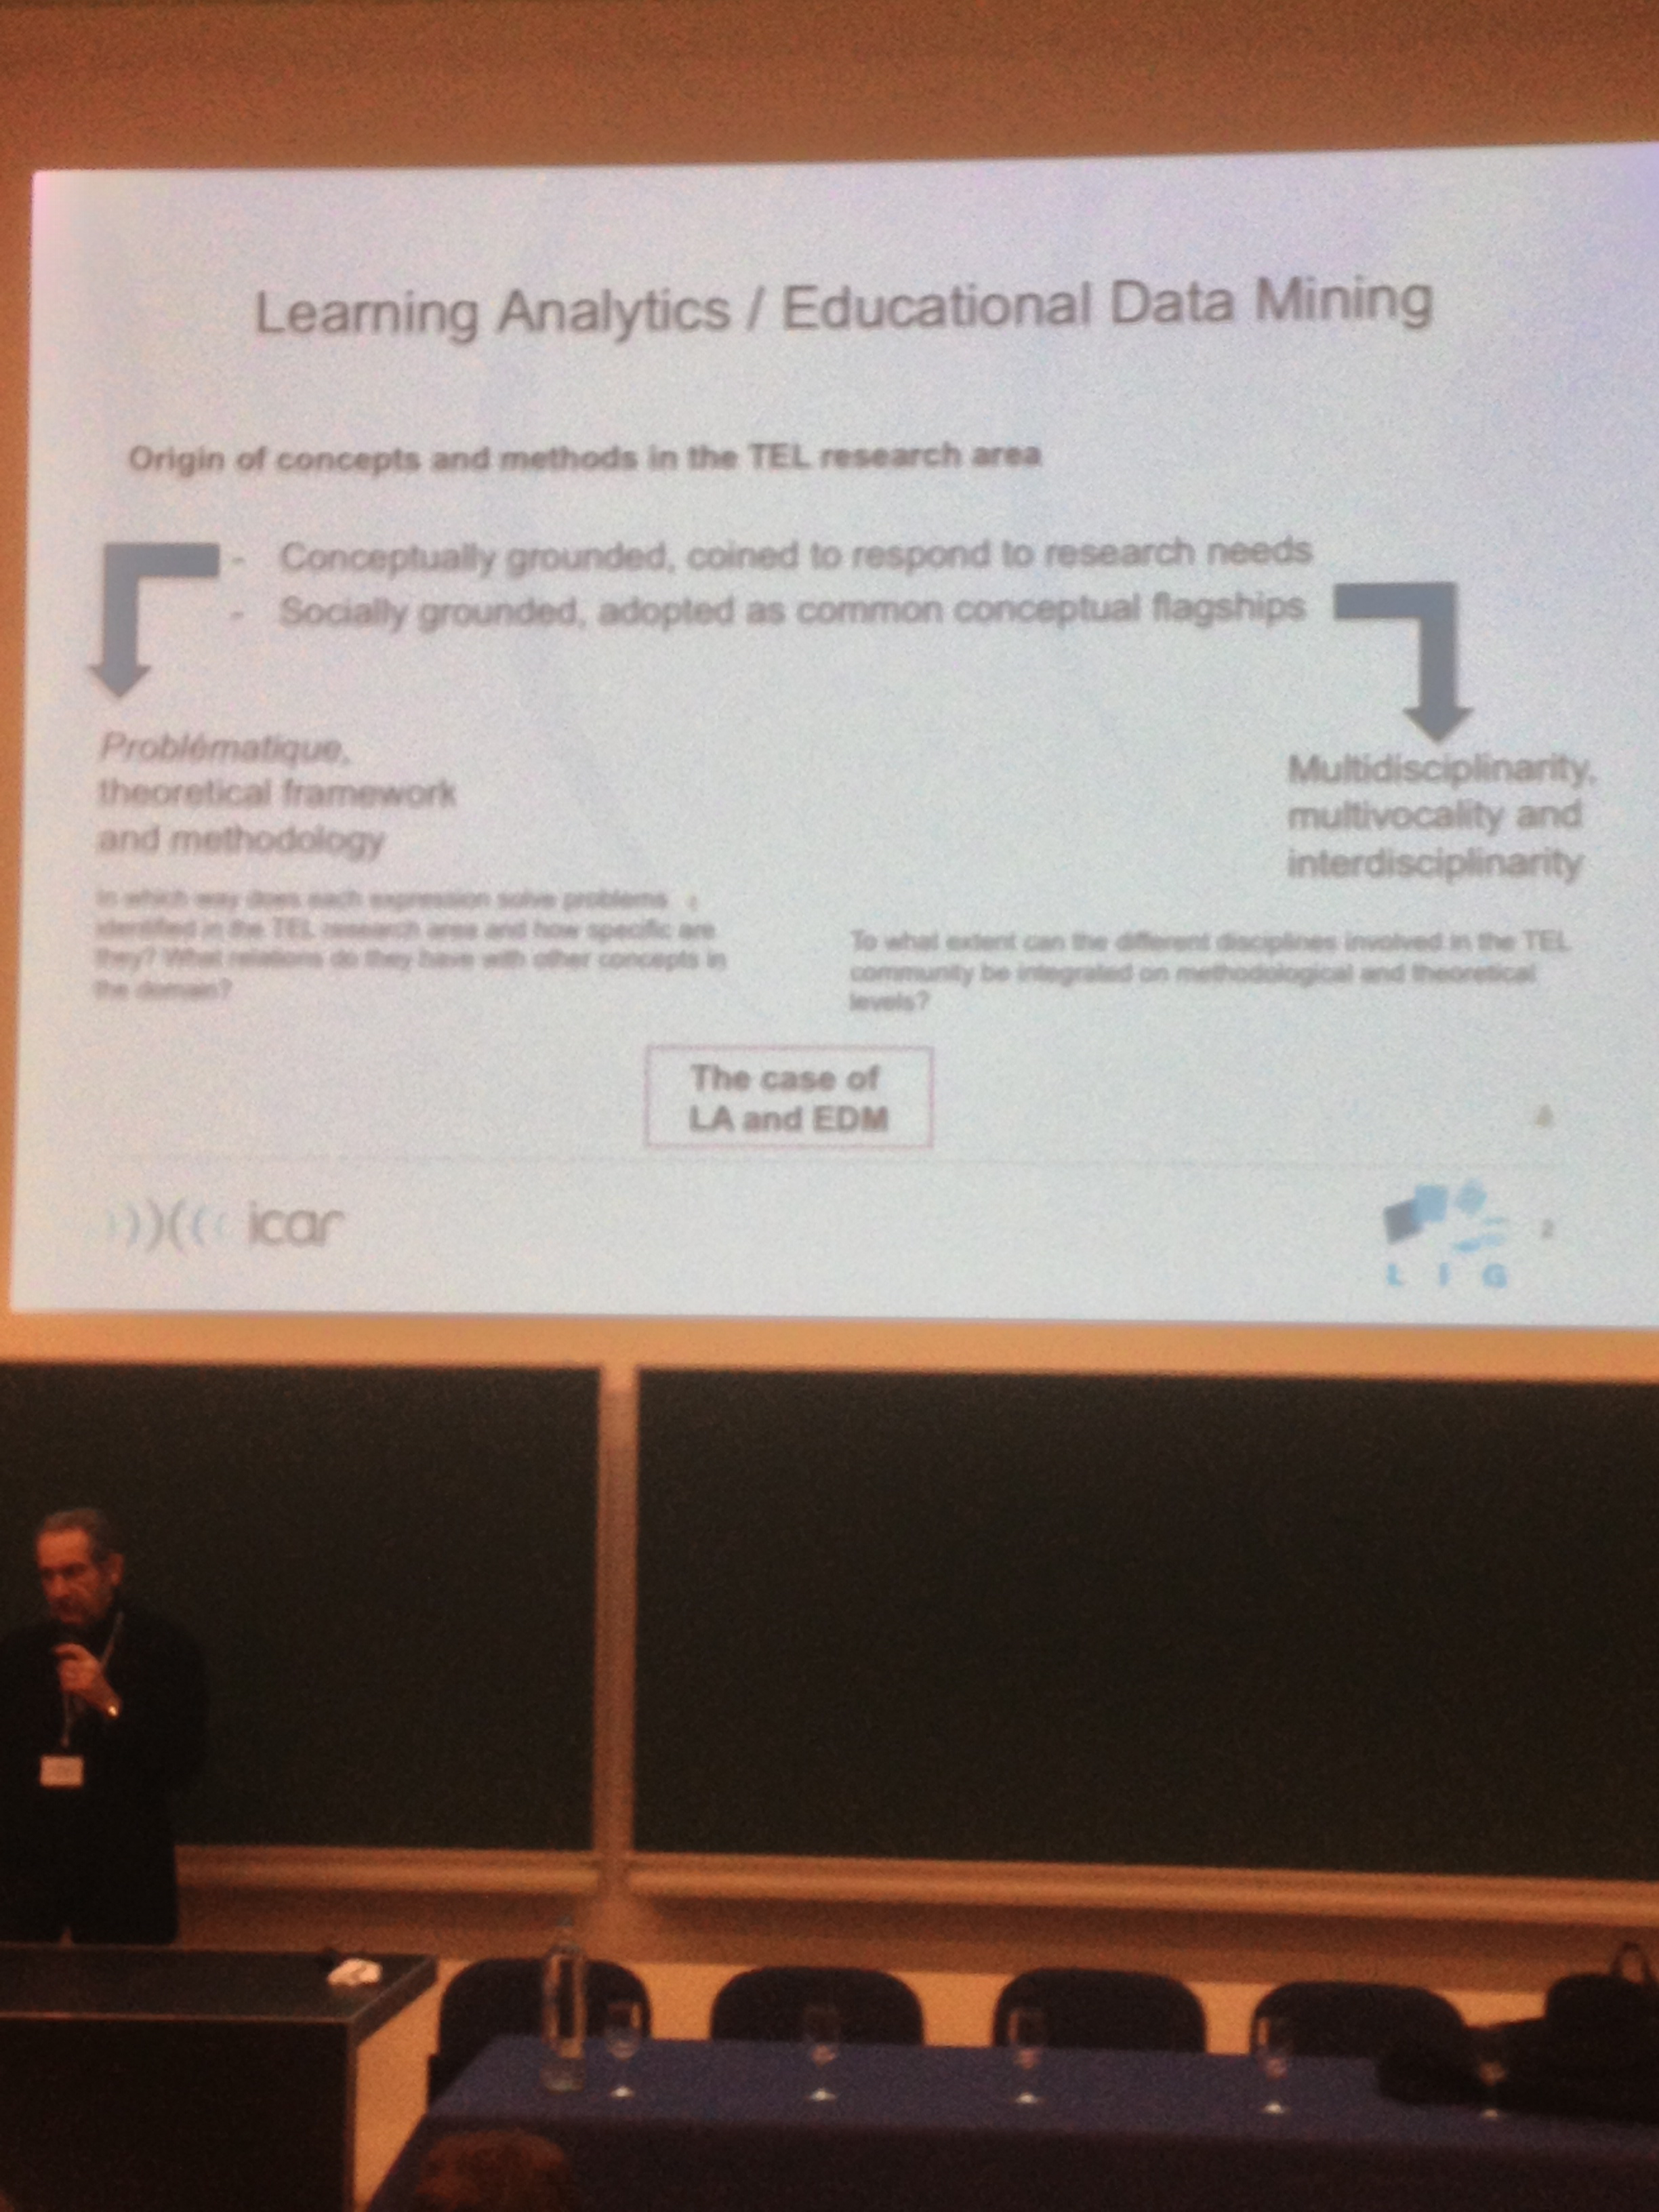 Learning Analytics vs Educational Data Mining